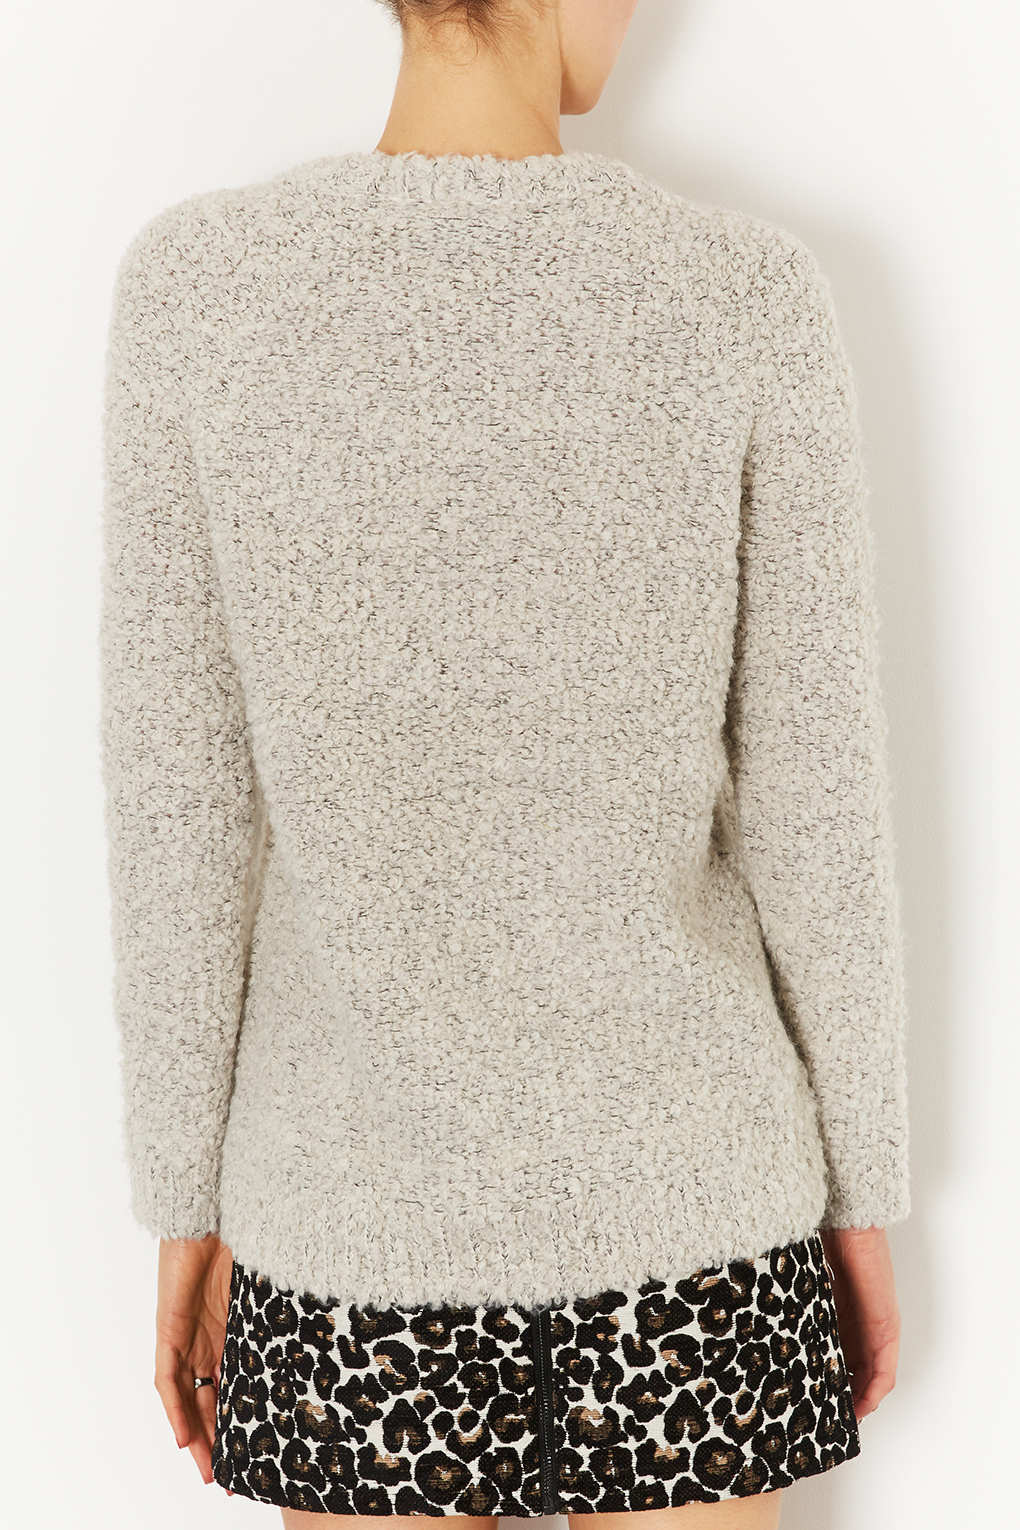 4f1079cb769 TOPSHOP Knitted Chunky Boucle Jumper in Gray - Lyst